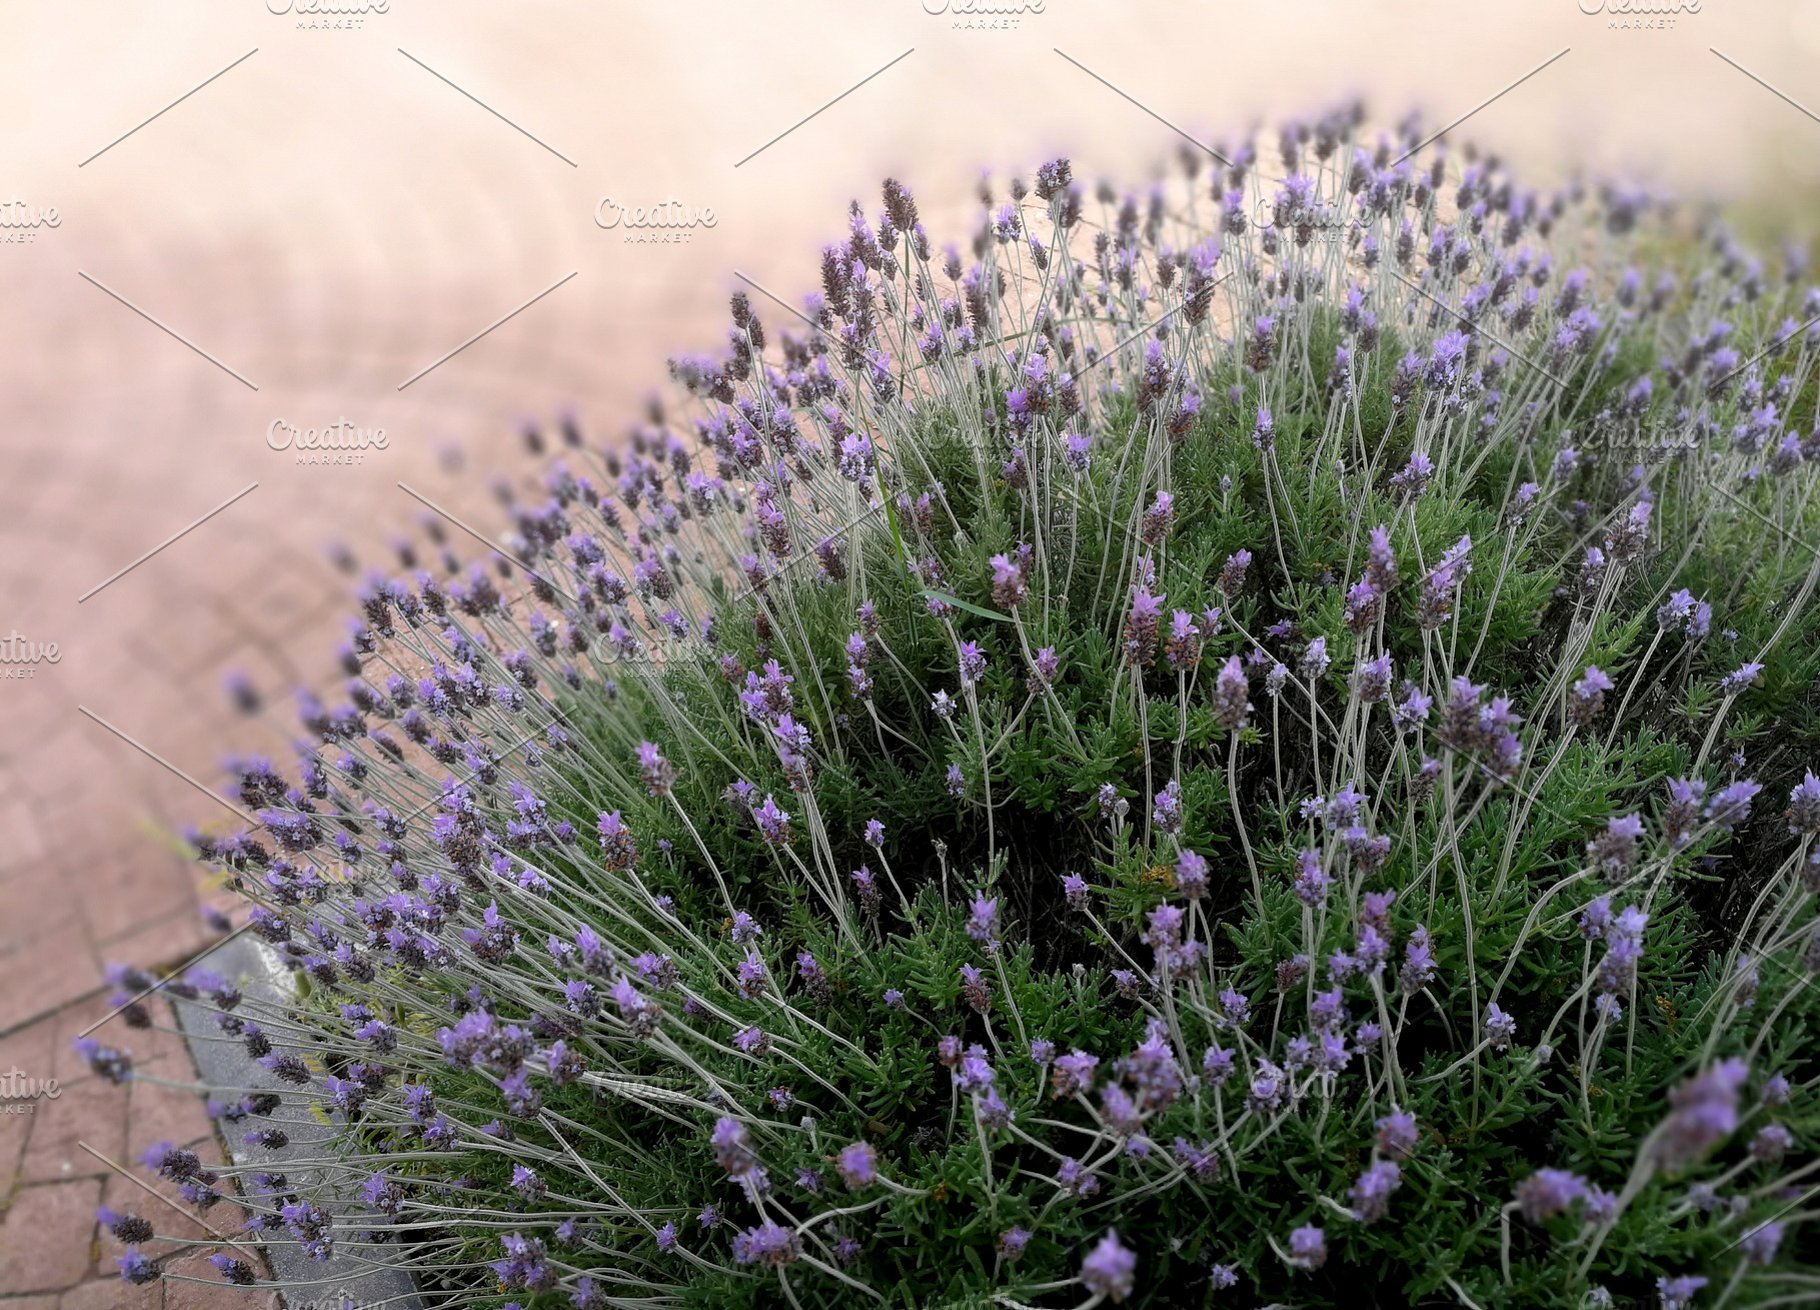 Lavender Bush In A Public Park High Quality Nature Stock Photos